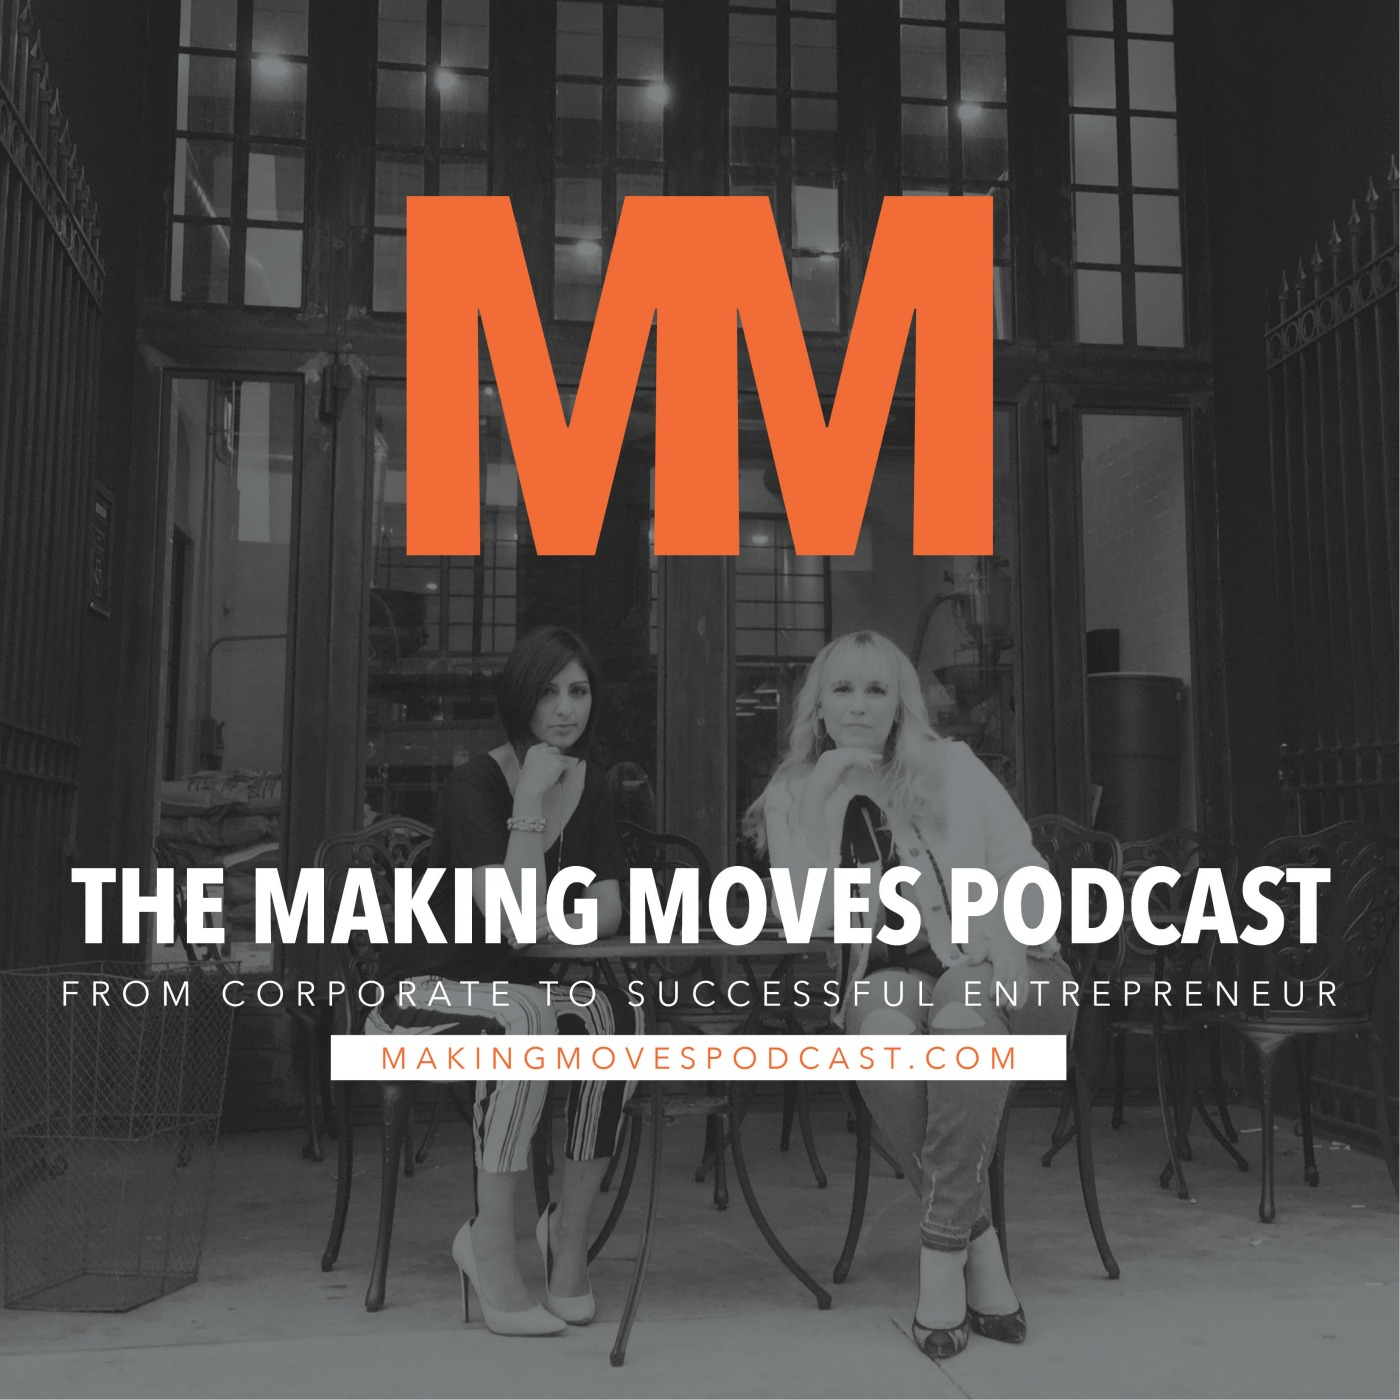 Making Moves Podcast | Corporate to Successful Entrepreneur show art